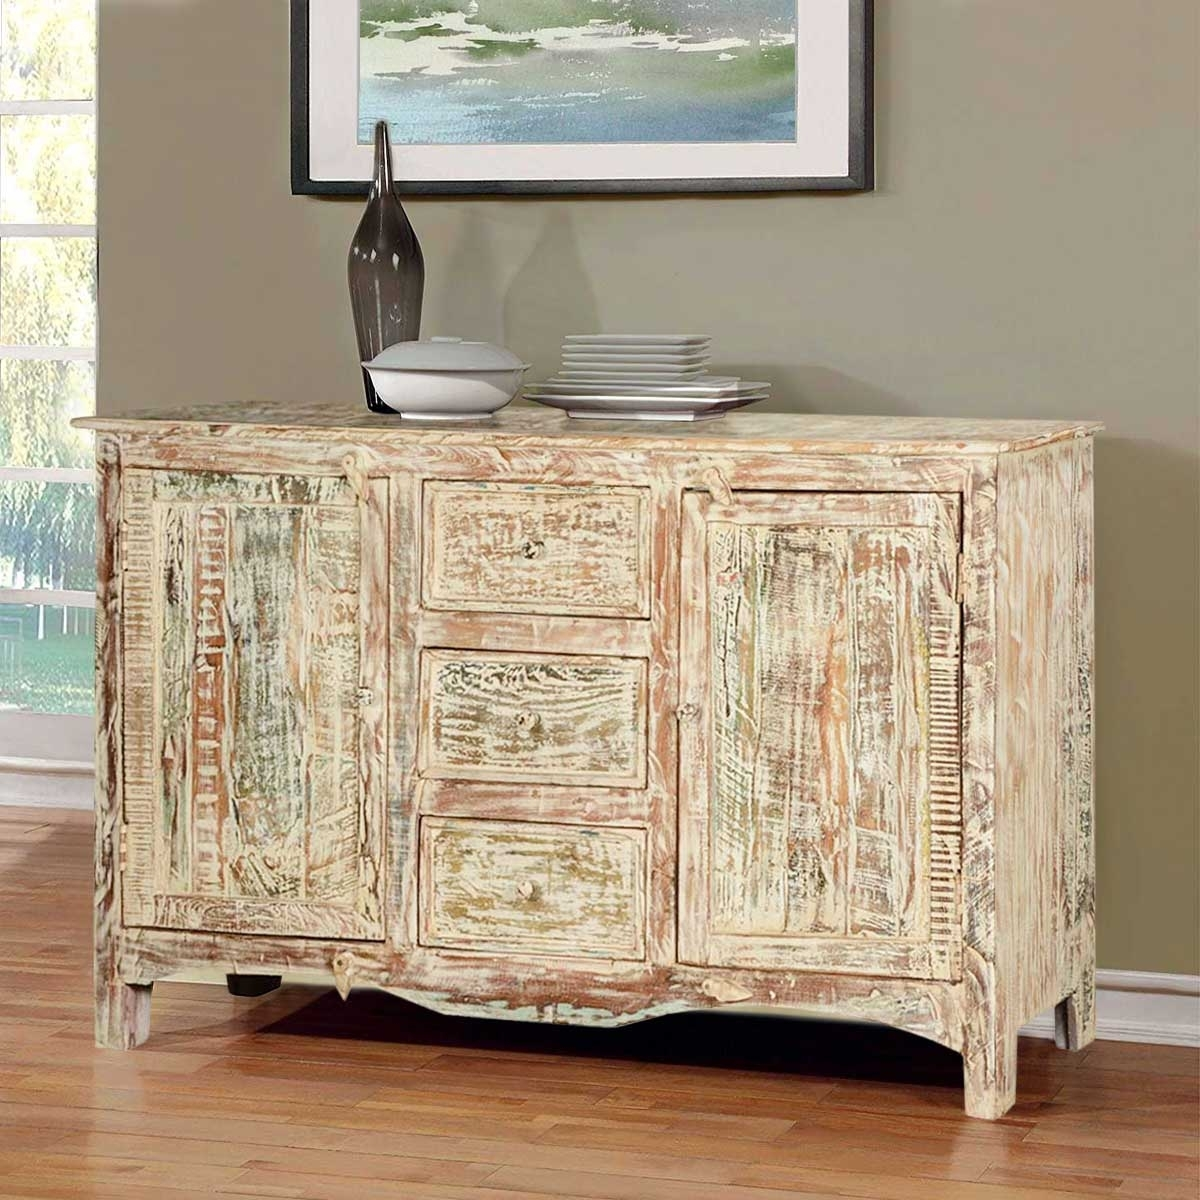 Adairville Distressed Mango Wood 3 Drawer Rustic Sideboard Cabinet pertaining to Antique White Distressed 3-Drawer/2-Door Sideboards (Image 3 of 30)